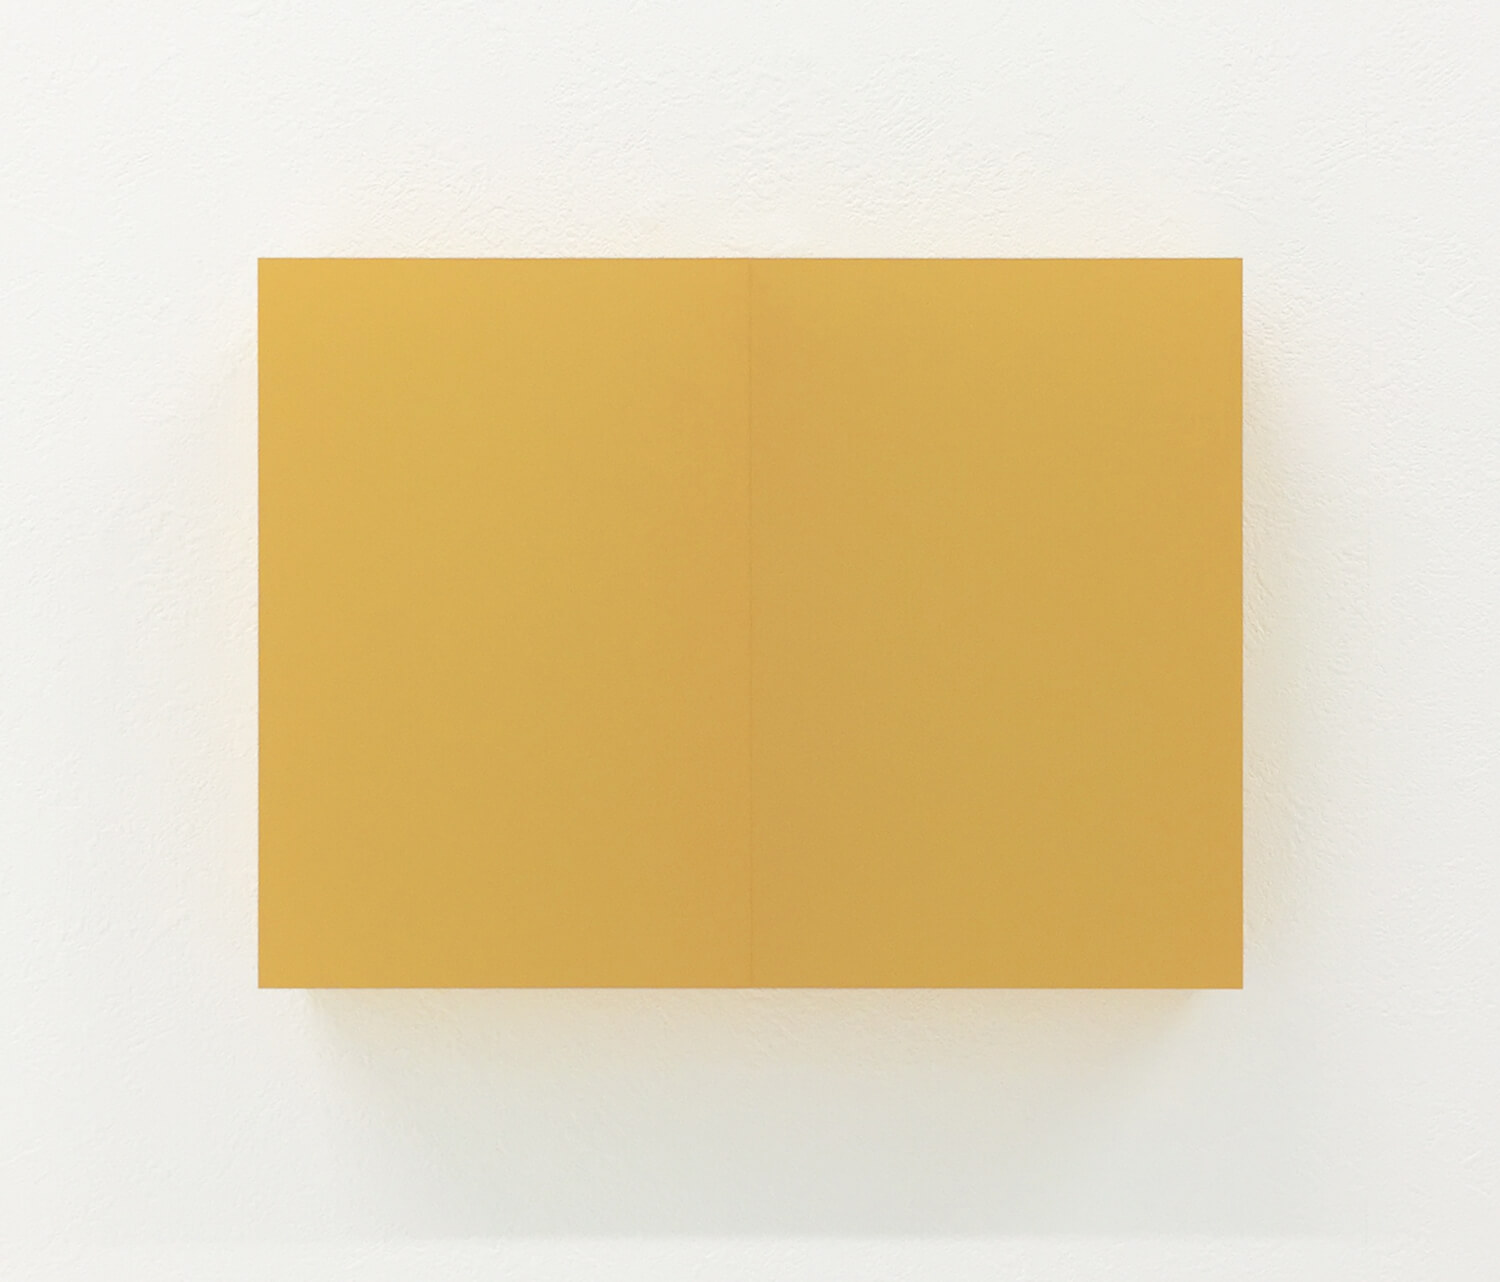 half note_yellow, silkscreen on perspex, 18 x 24 x 4 cm, 2018